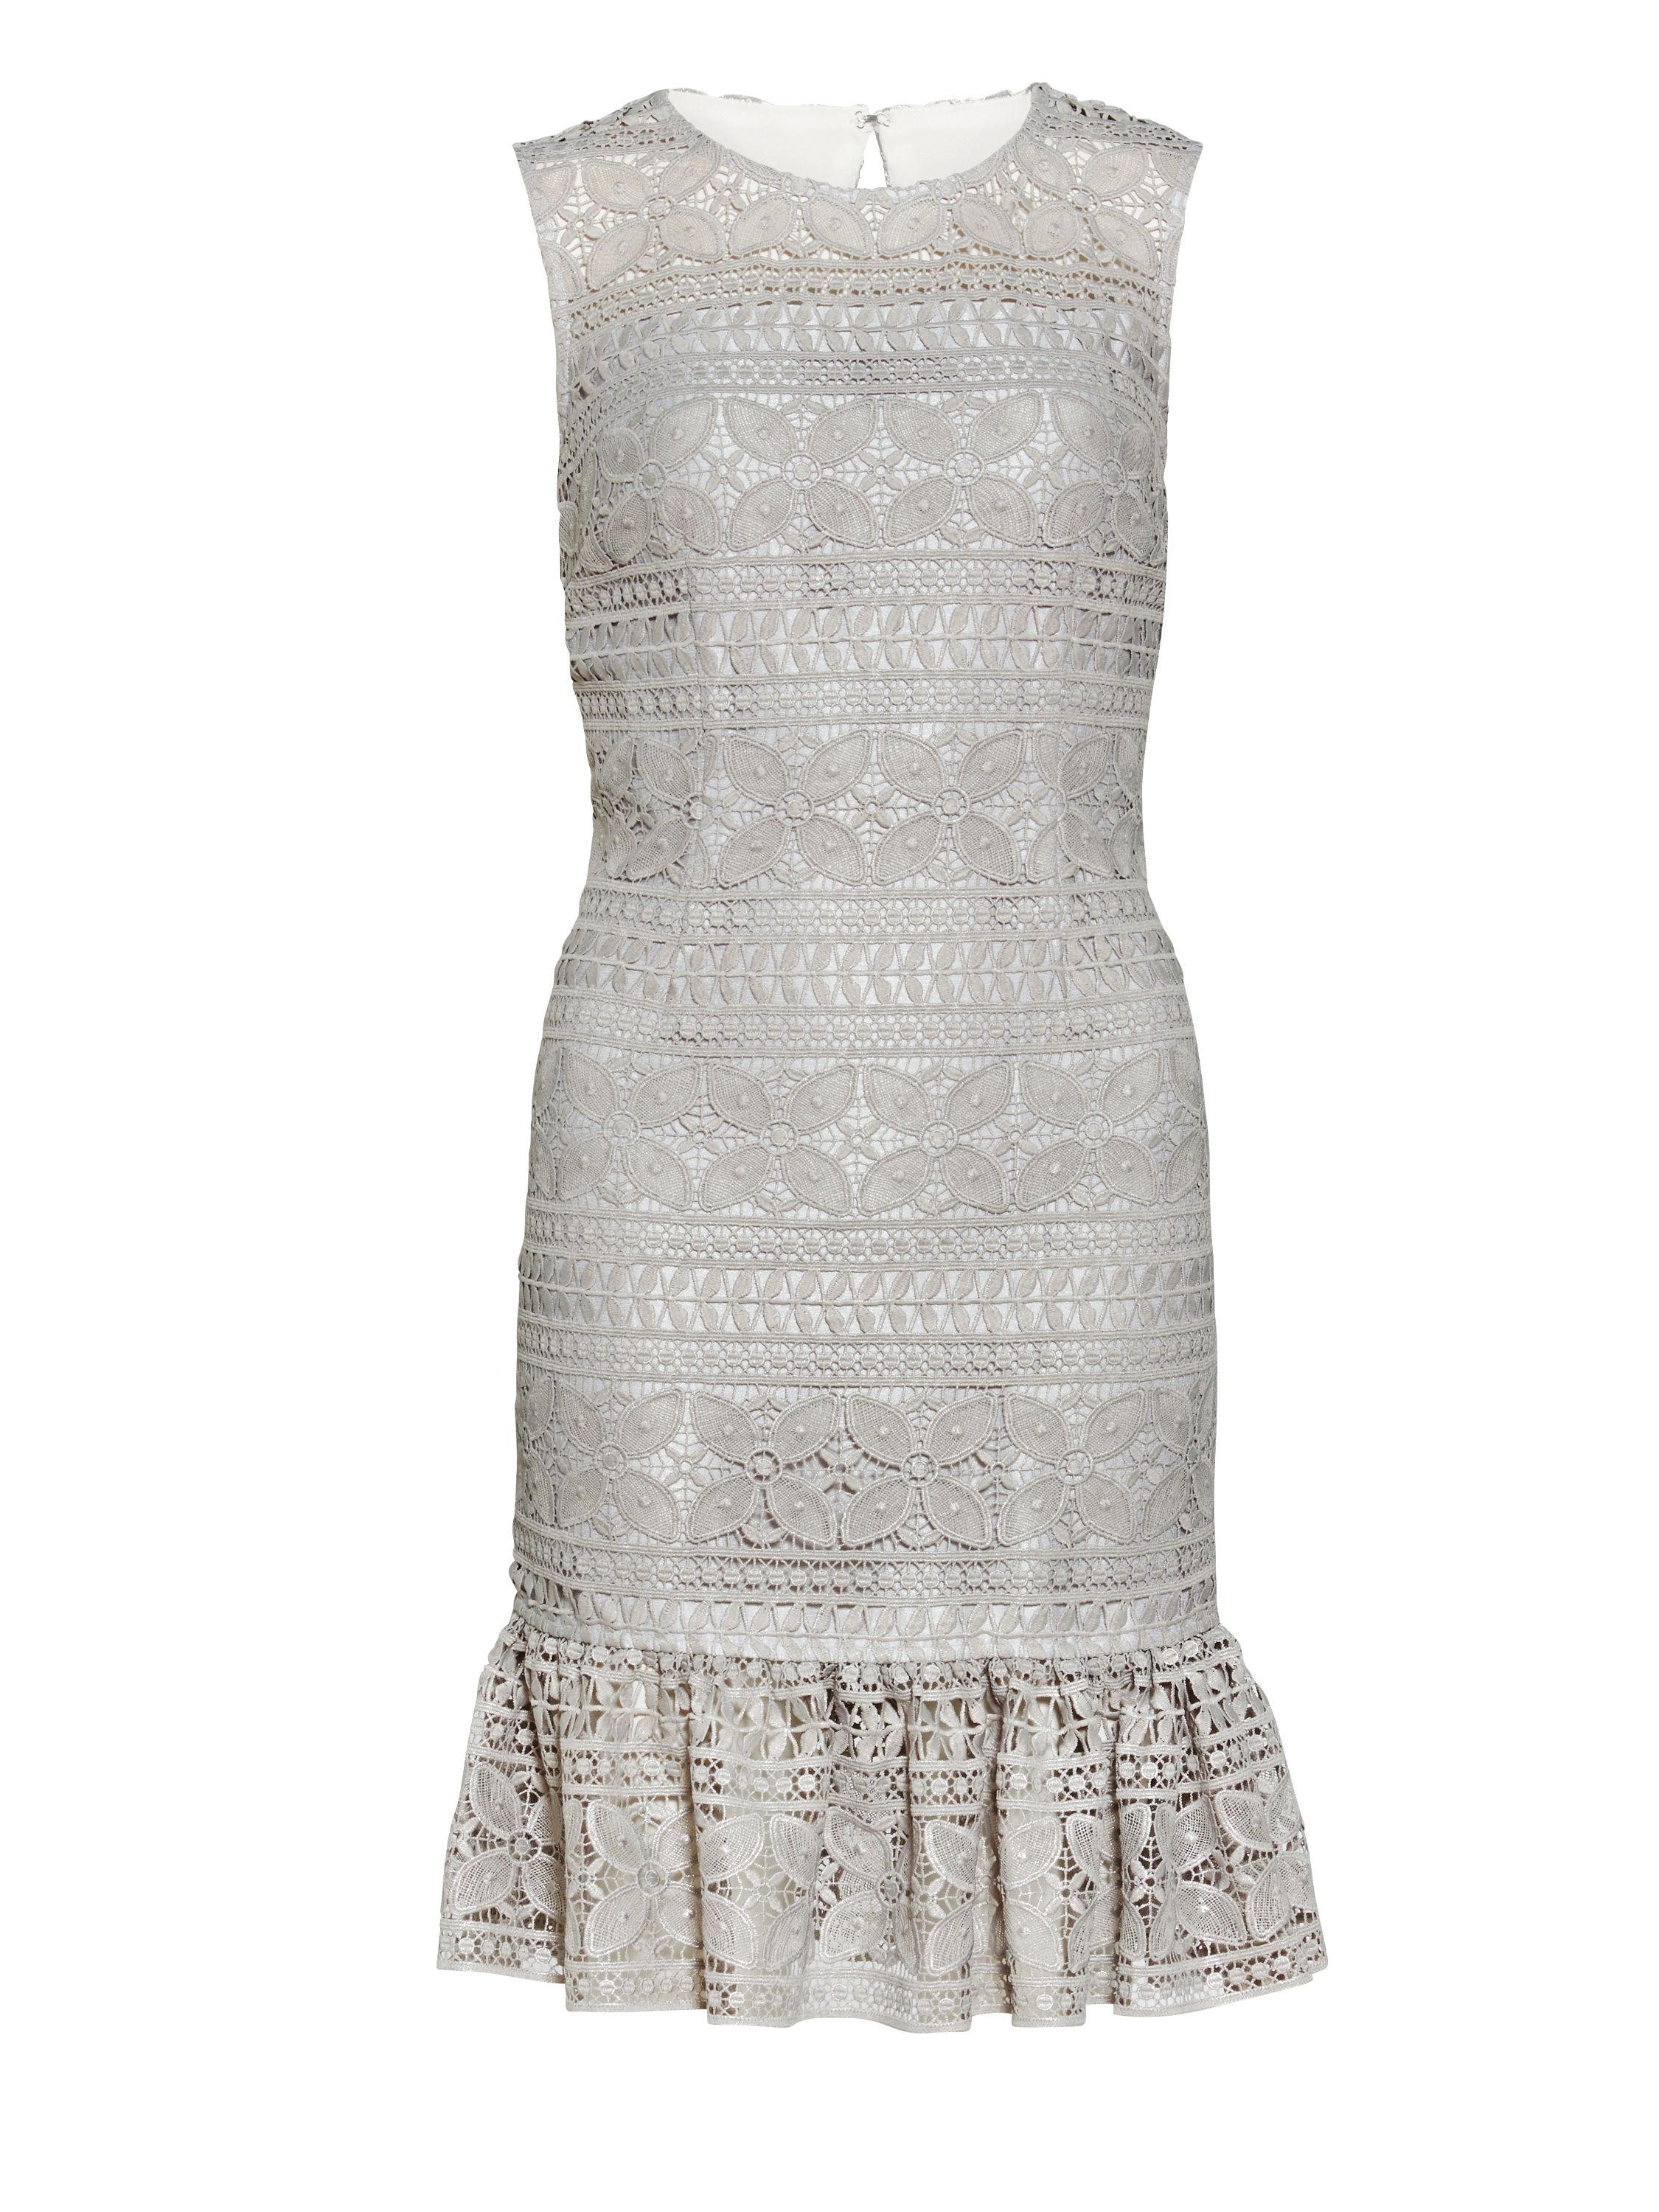 Gina Bacconi Antique Foiled Panelled Embroidery Dress, White